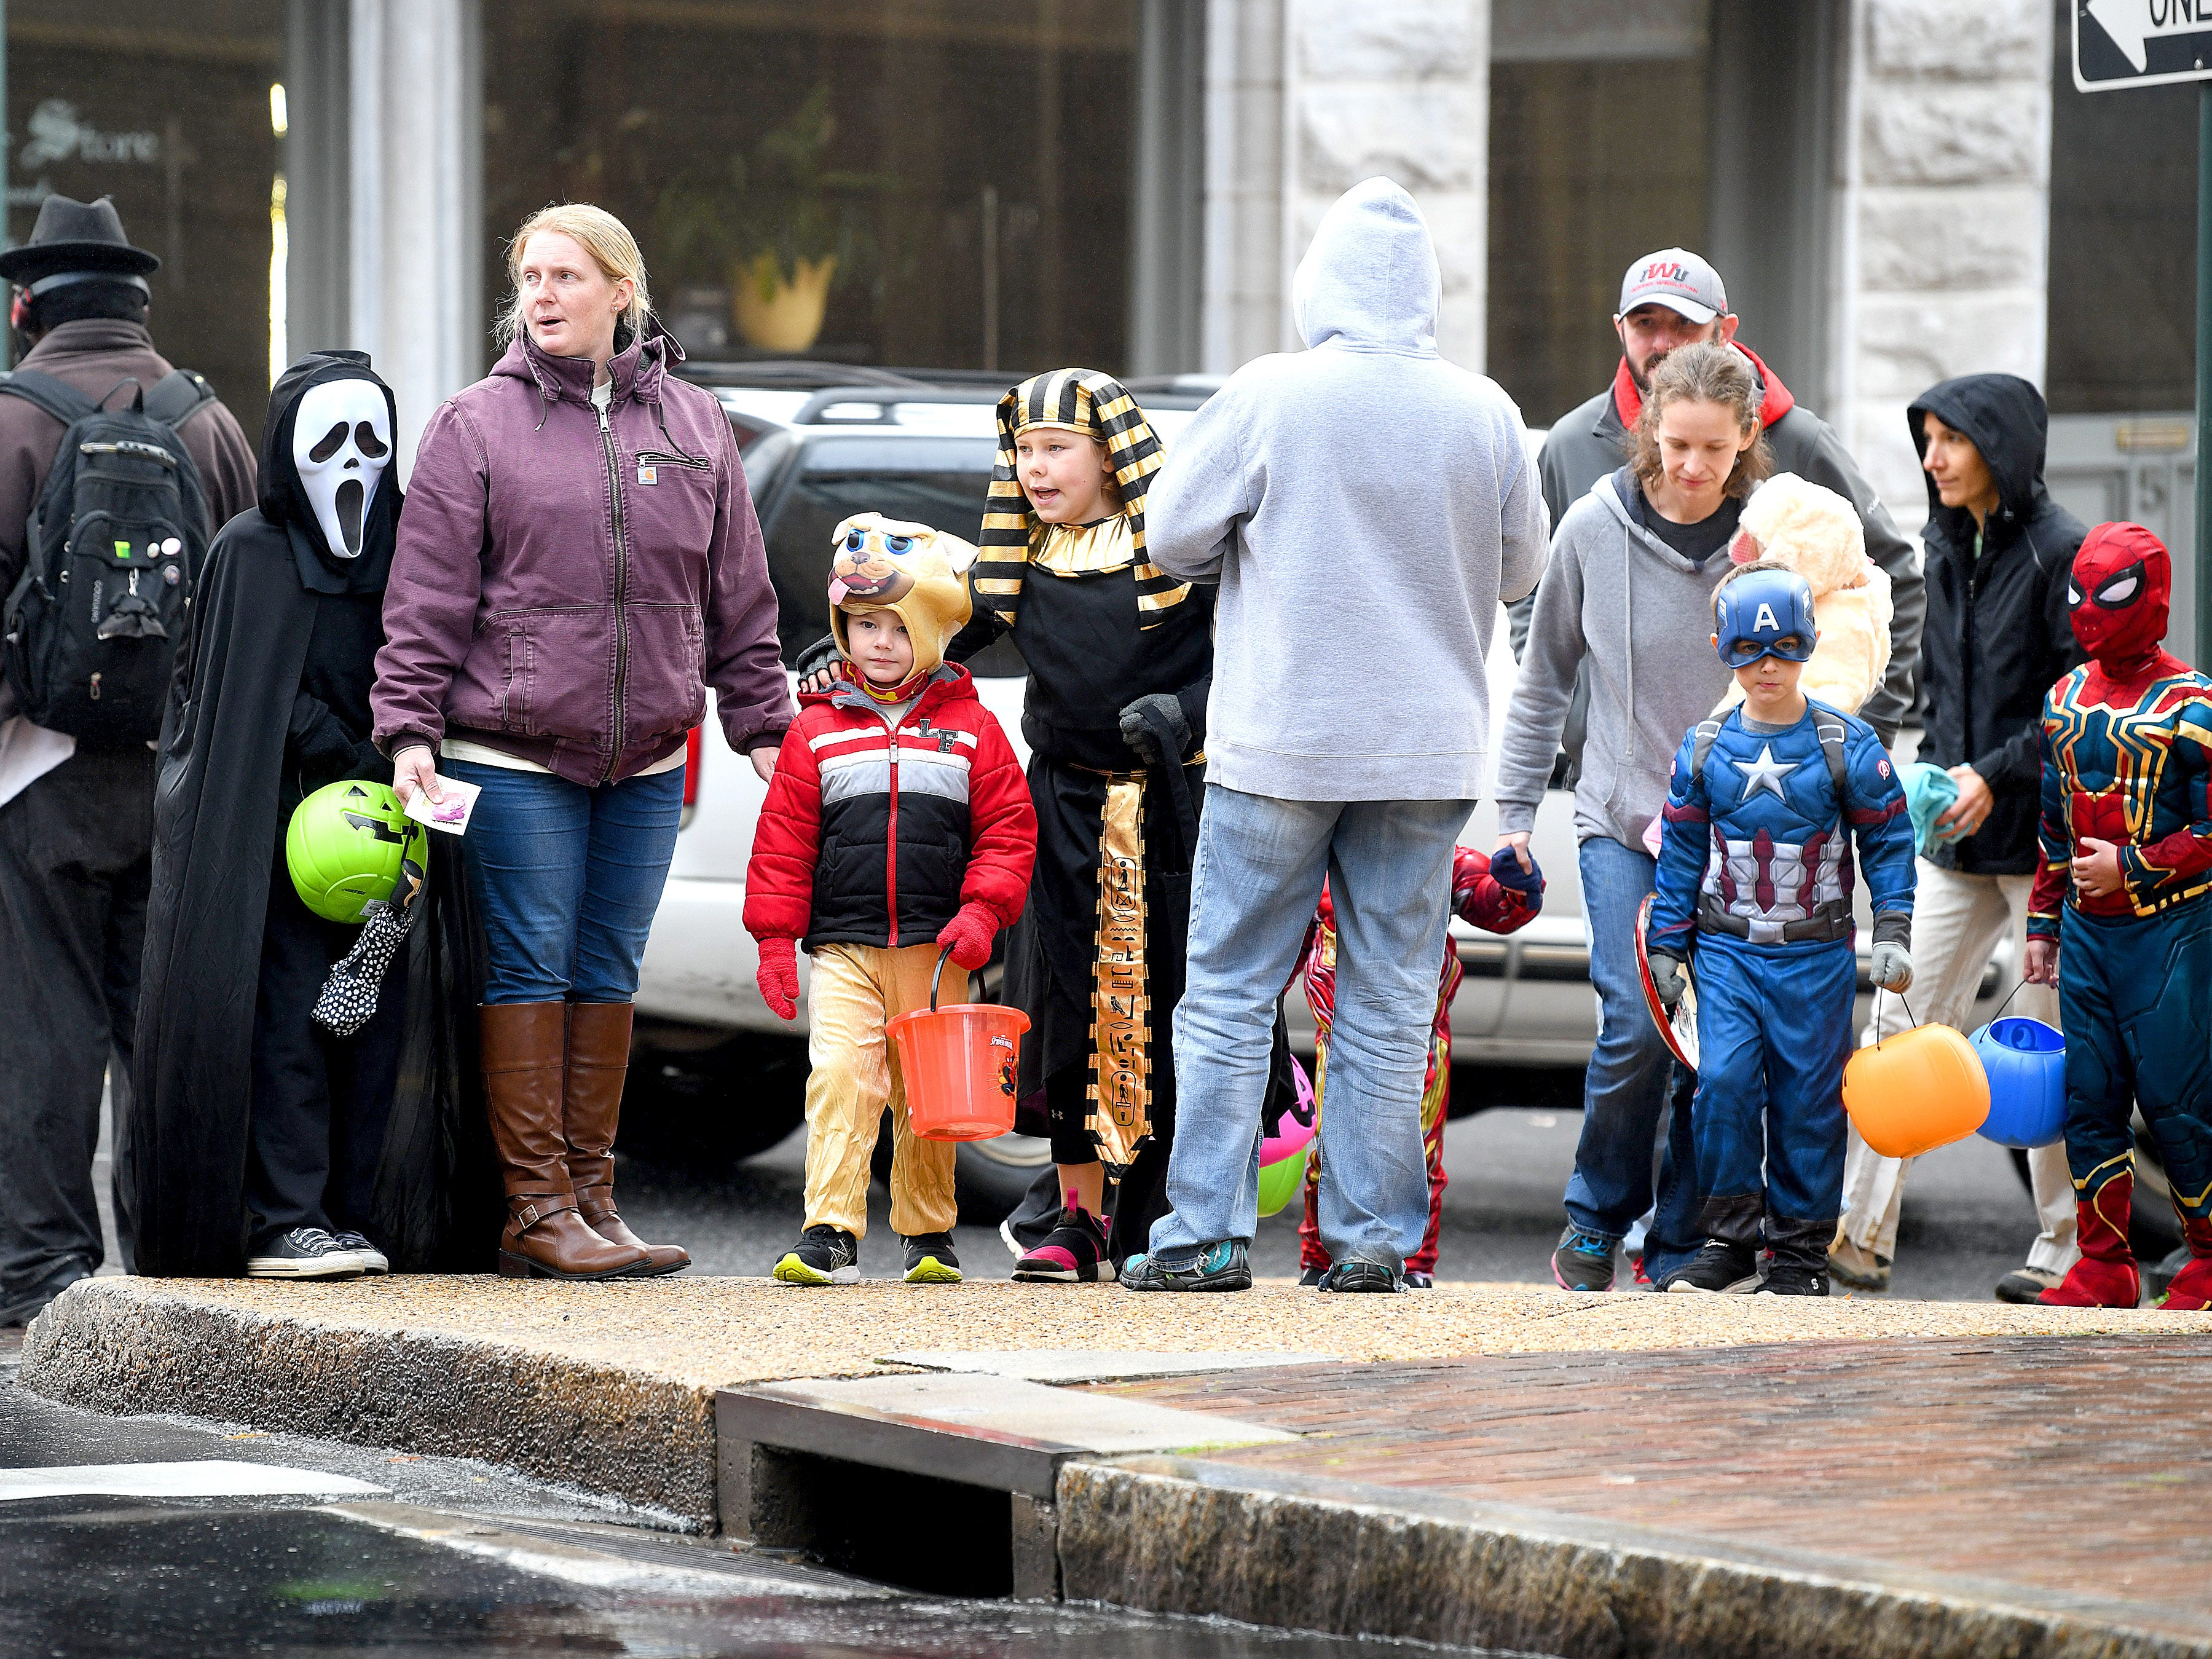 Trick-or-treaters fill a street corner while trick-or-treating in downtown Staunton on Saturday, Oct. 27, 2018.